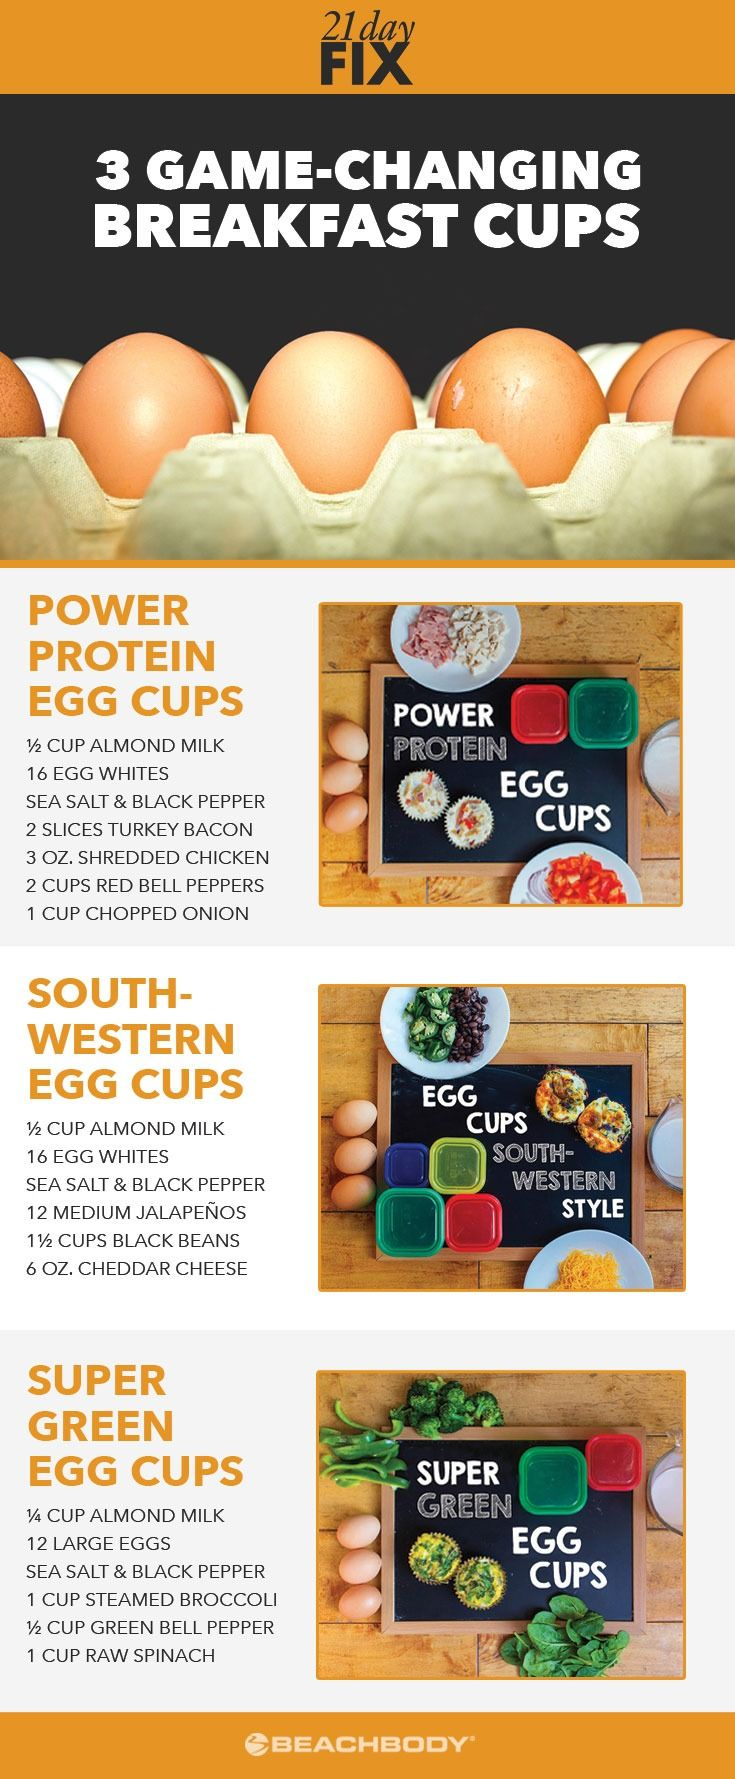 3 Easy 21 Day Fix Egg Cup Recipes 21 Day Fix Breakfast